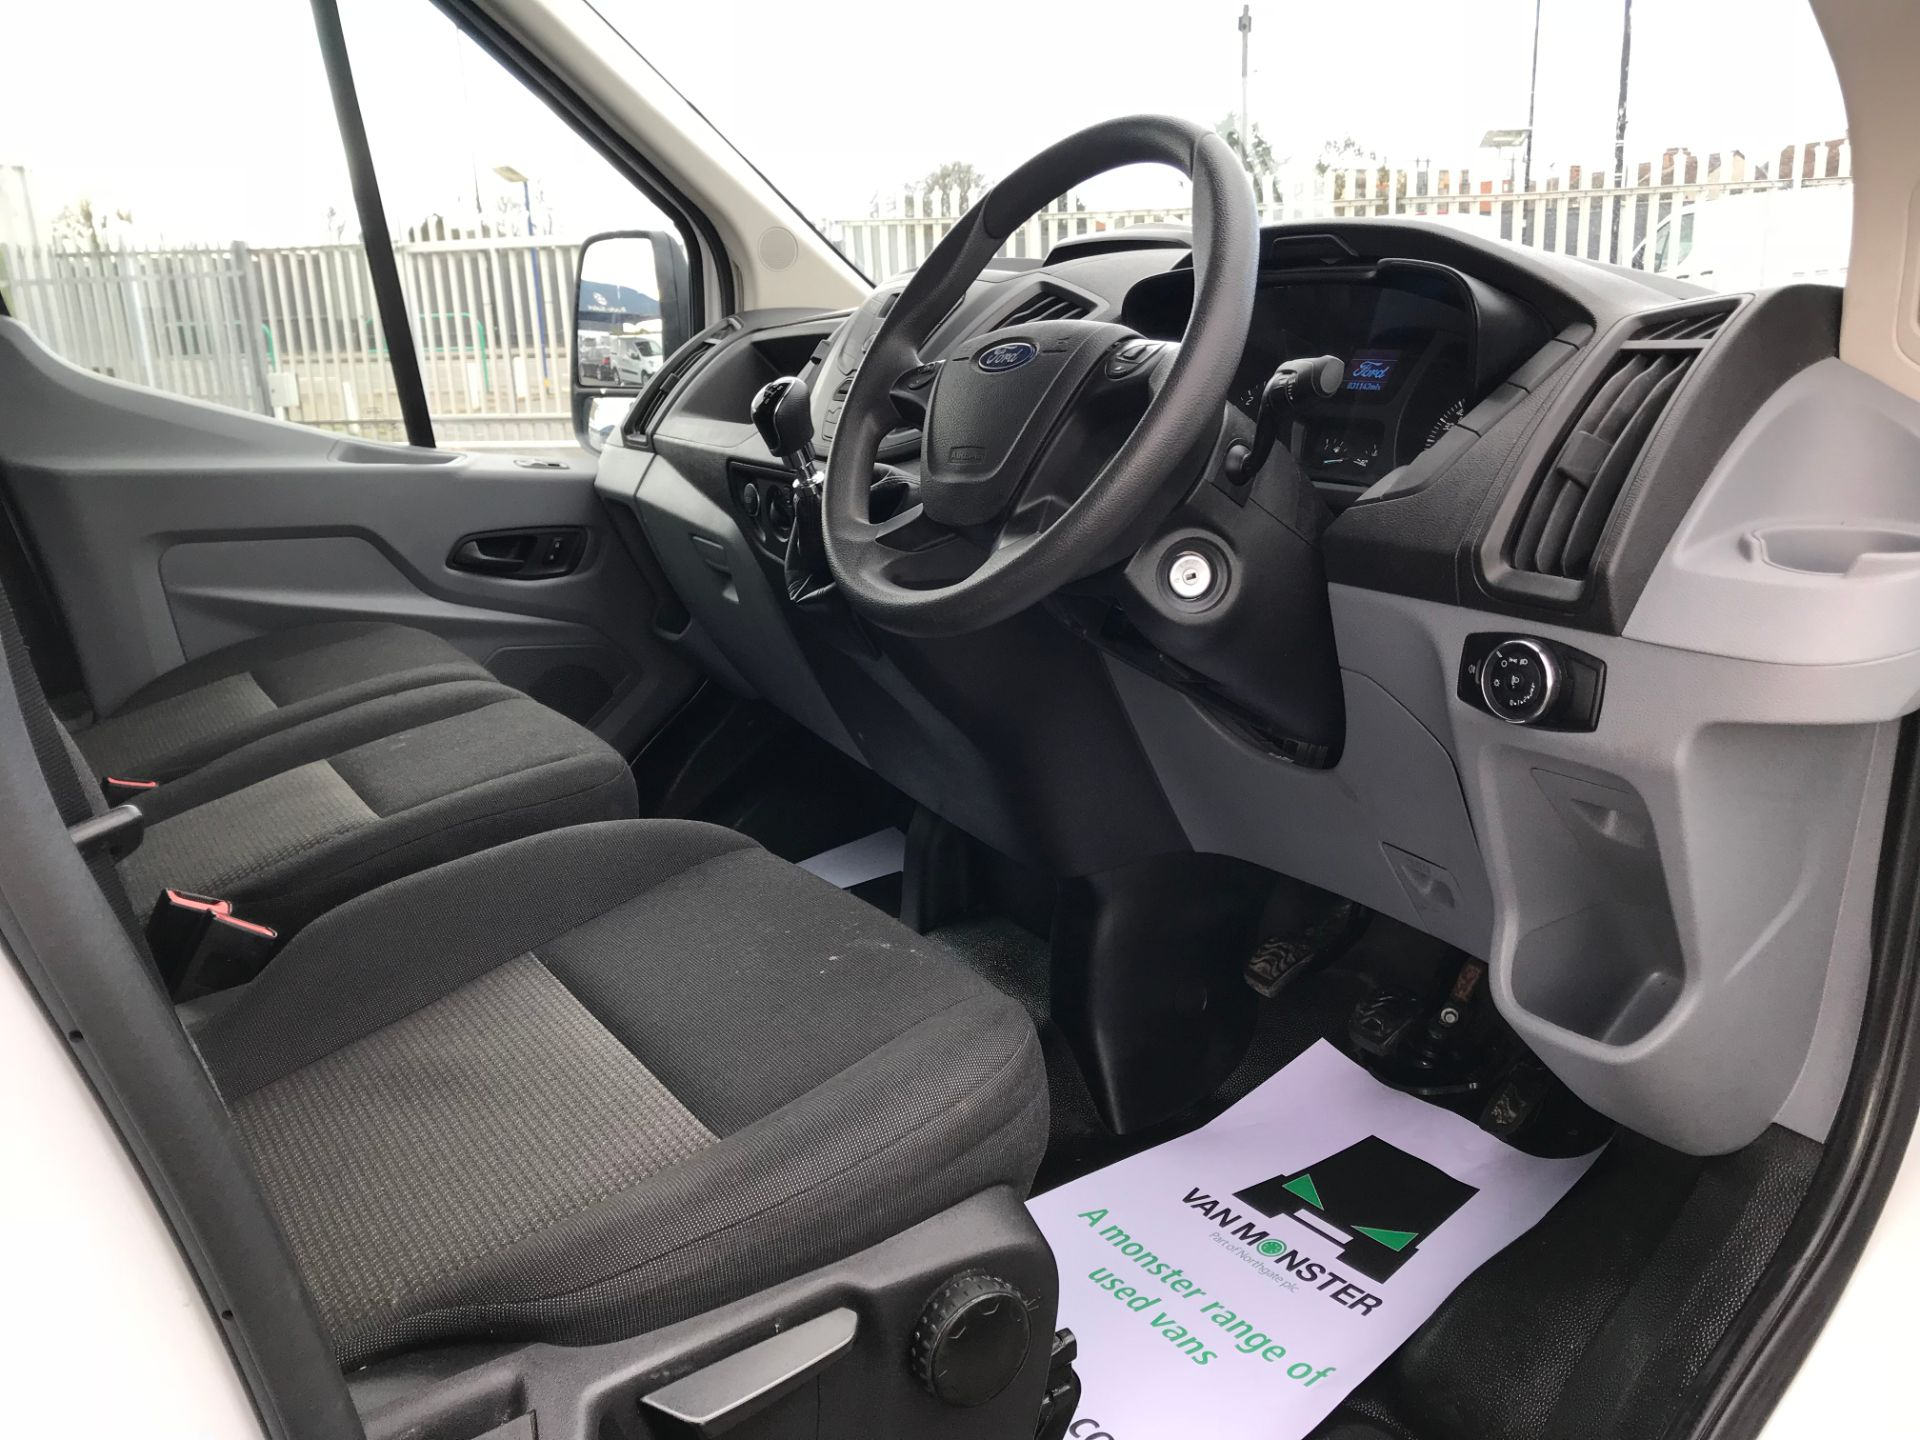 2018 Ford Transit 2.0 Tdci 130Ps H3 Van (FH67WCN) Image 21